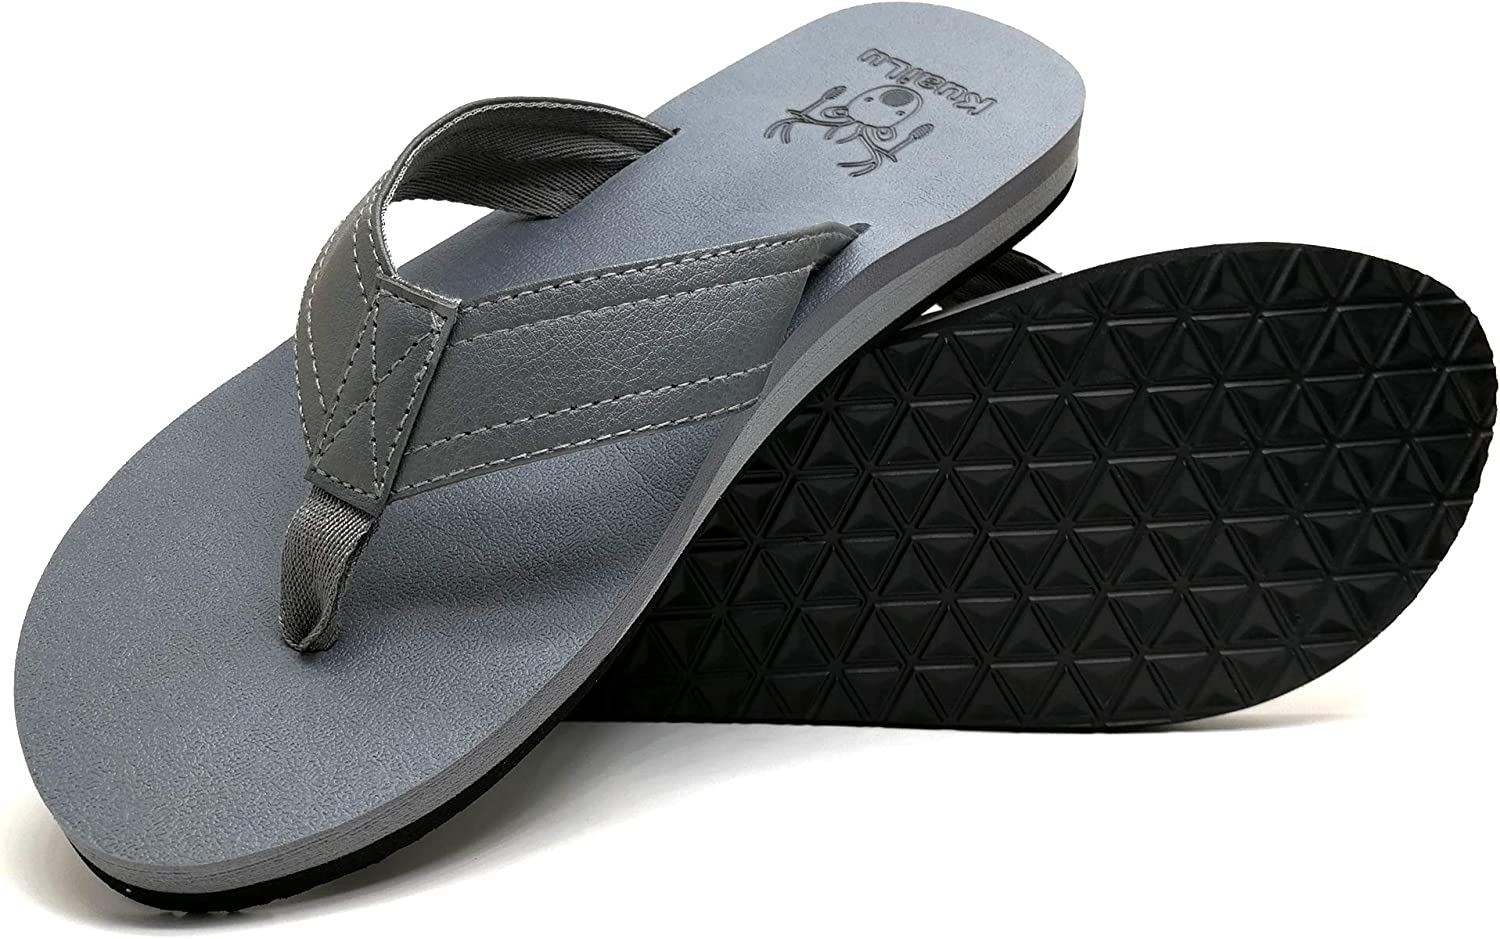 KuaiLu Men's Yoga Mat Leather Flip Flops Thong Sandals with Arch Support